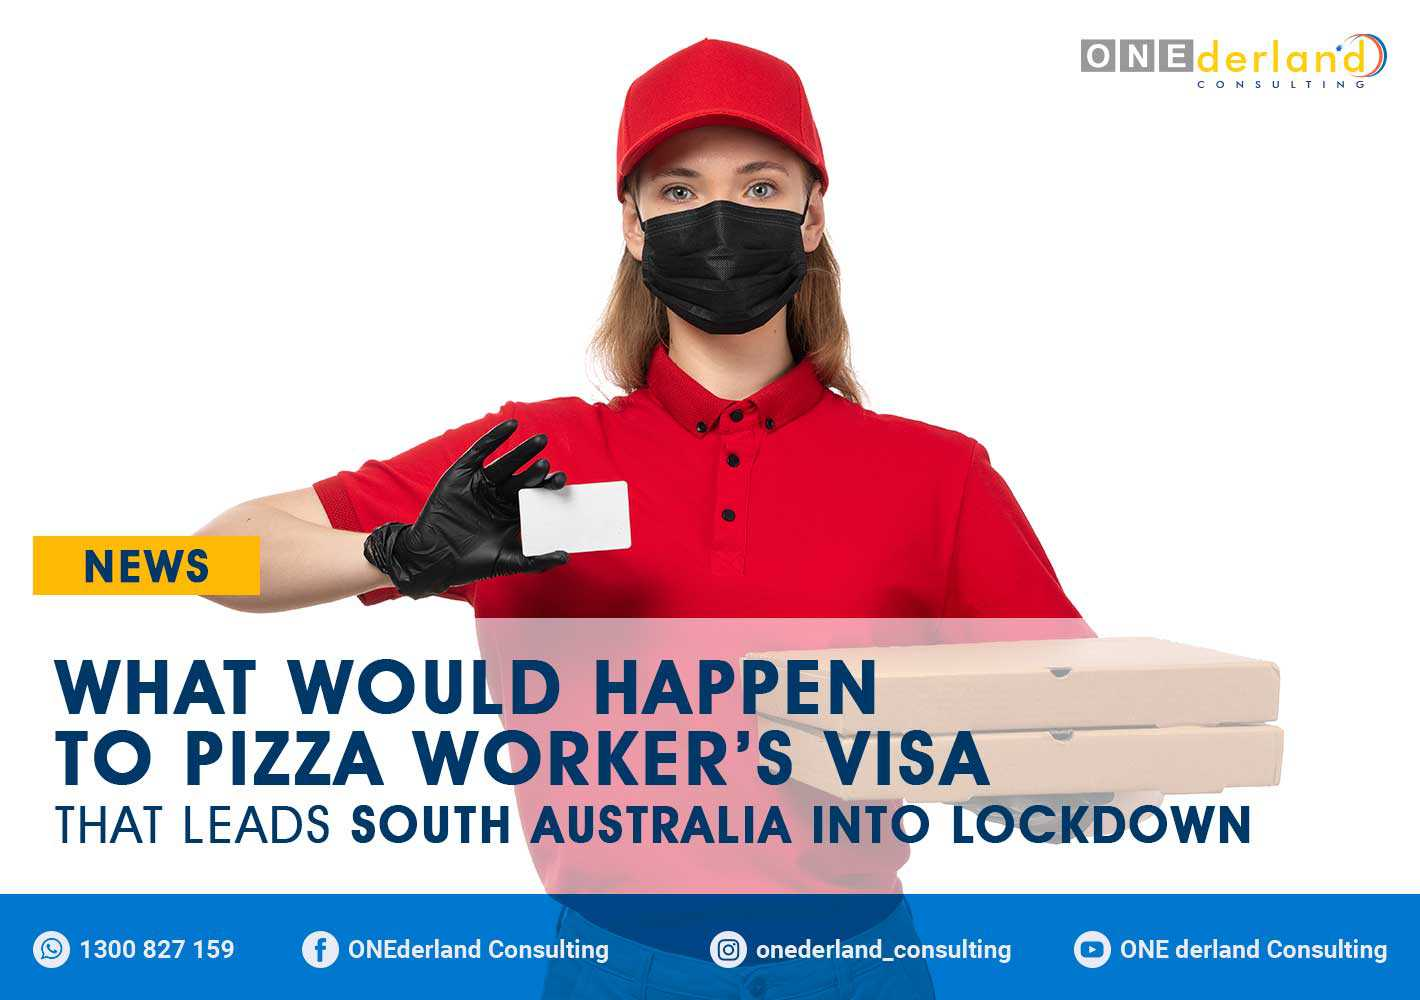 COVID-19 Pizza Worker Who Holds Temporary Visa Lies and Forced South Australia Into Lockdown